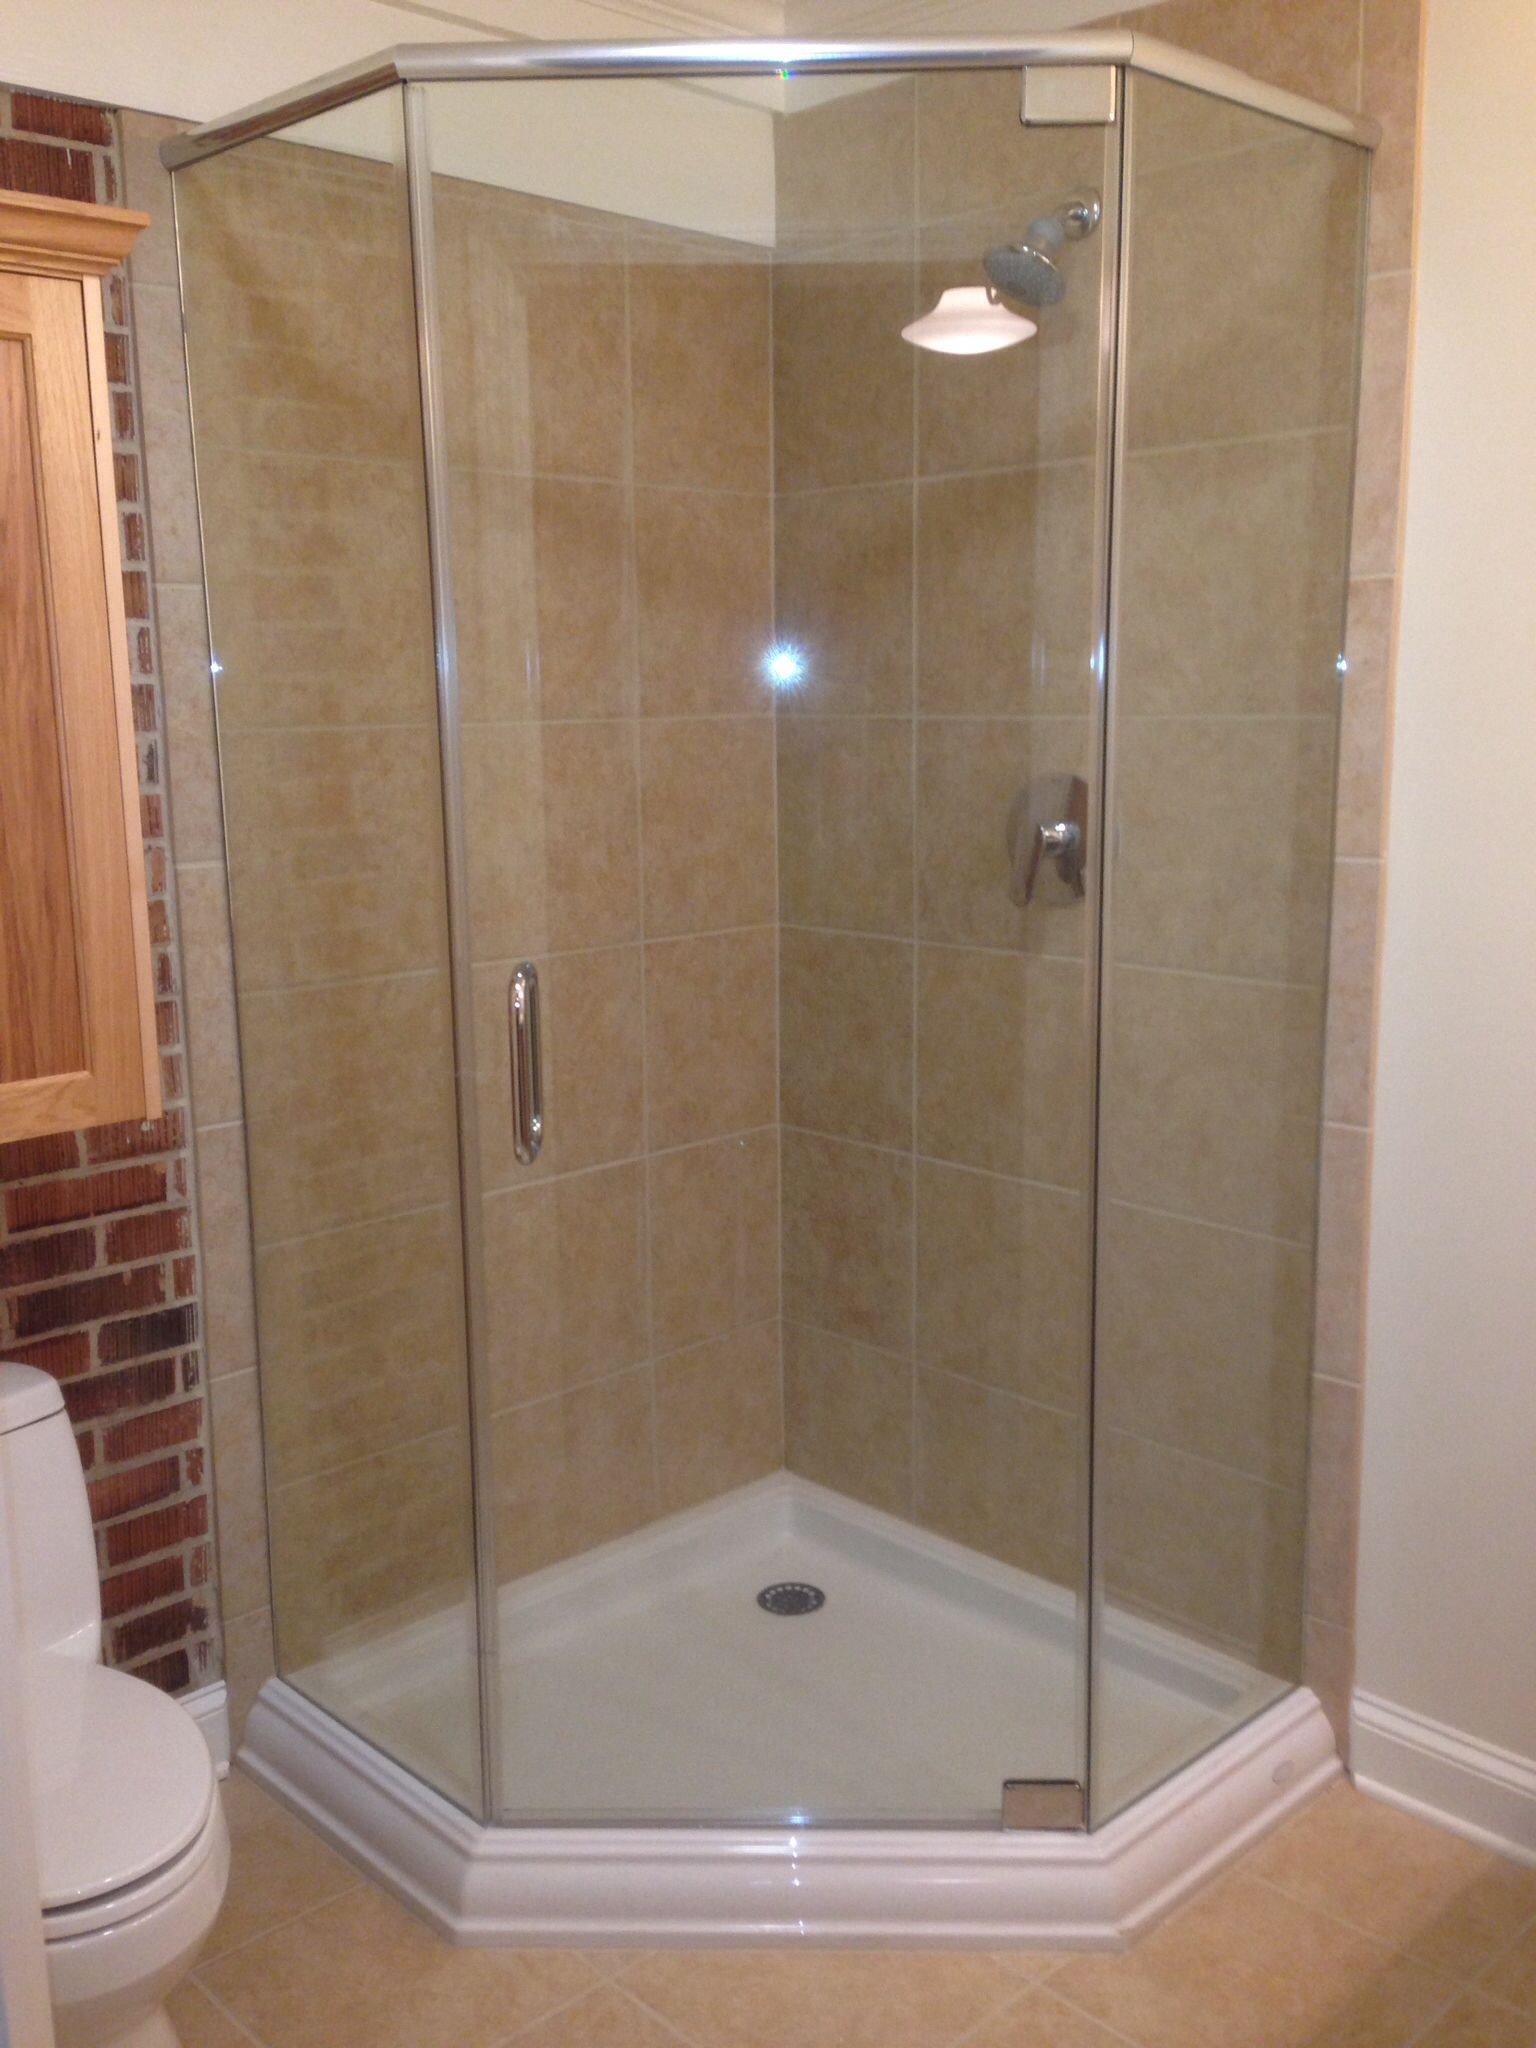 Glass corner shower to make small bathroom feel bigger | Bathrooms ...